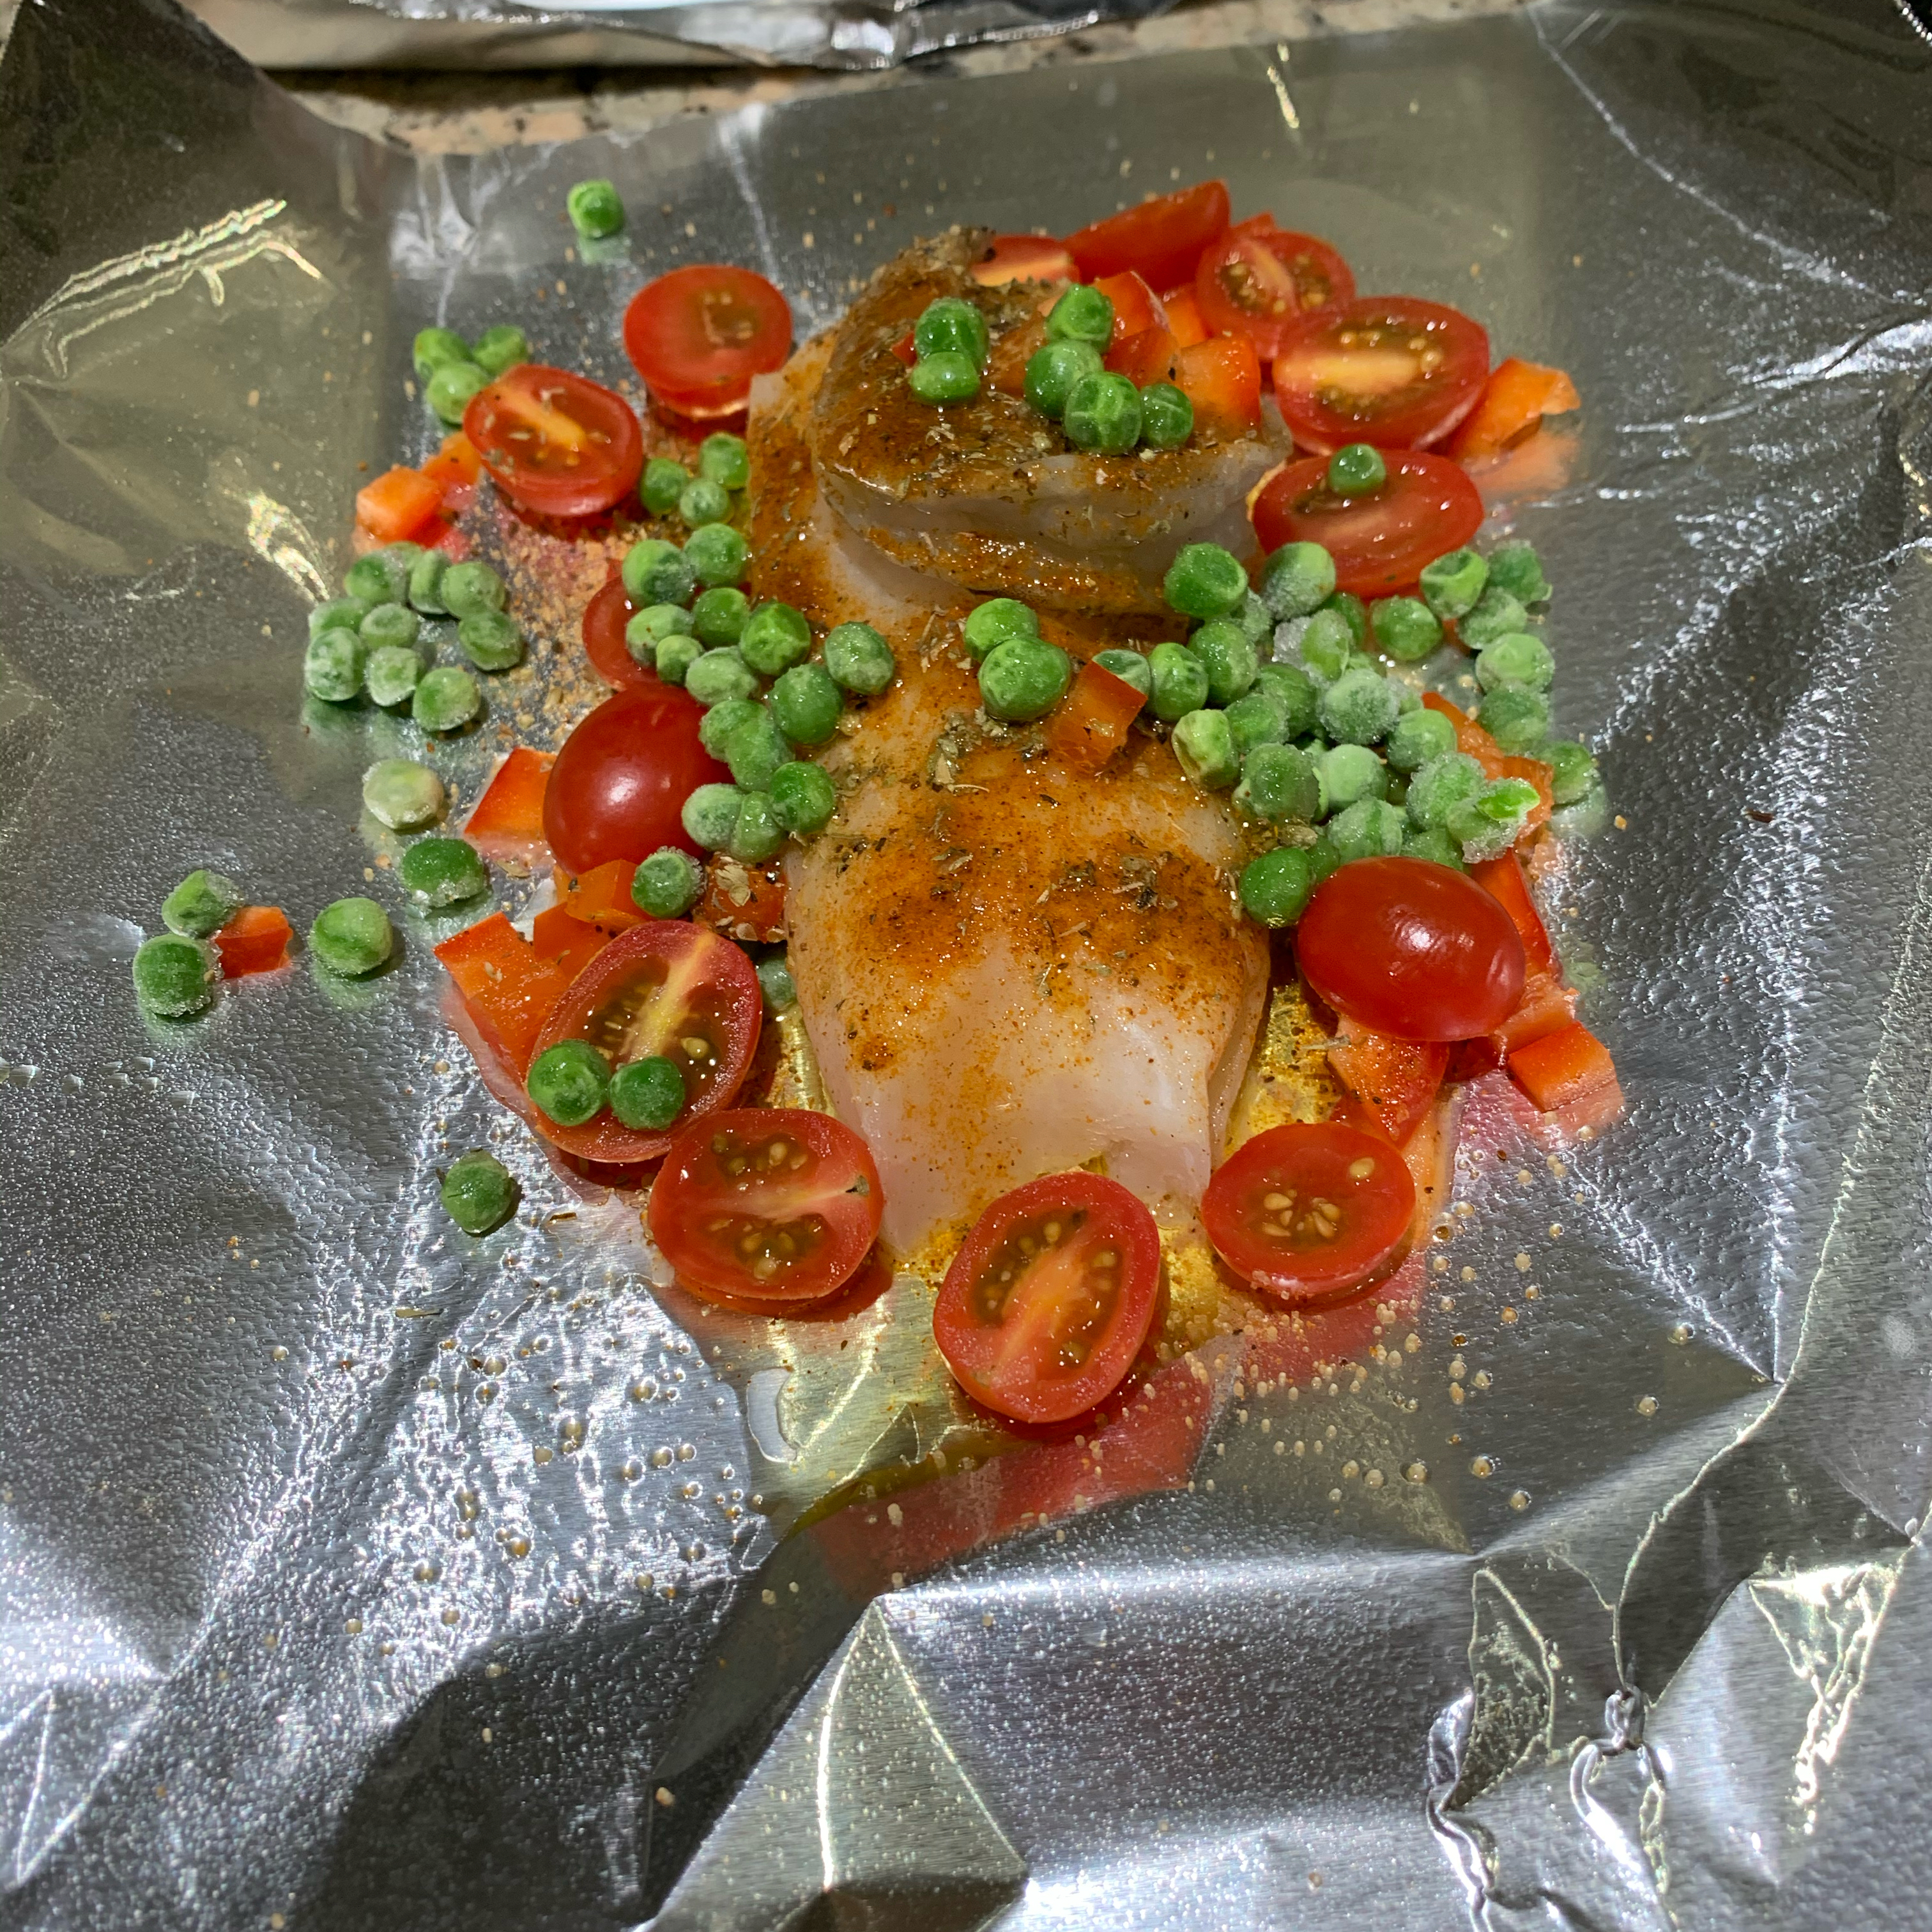 Baked Cod in Foil Woodrow